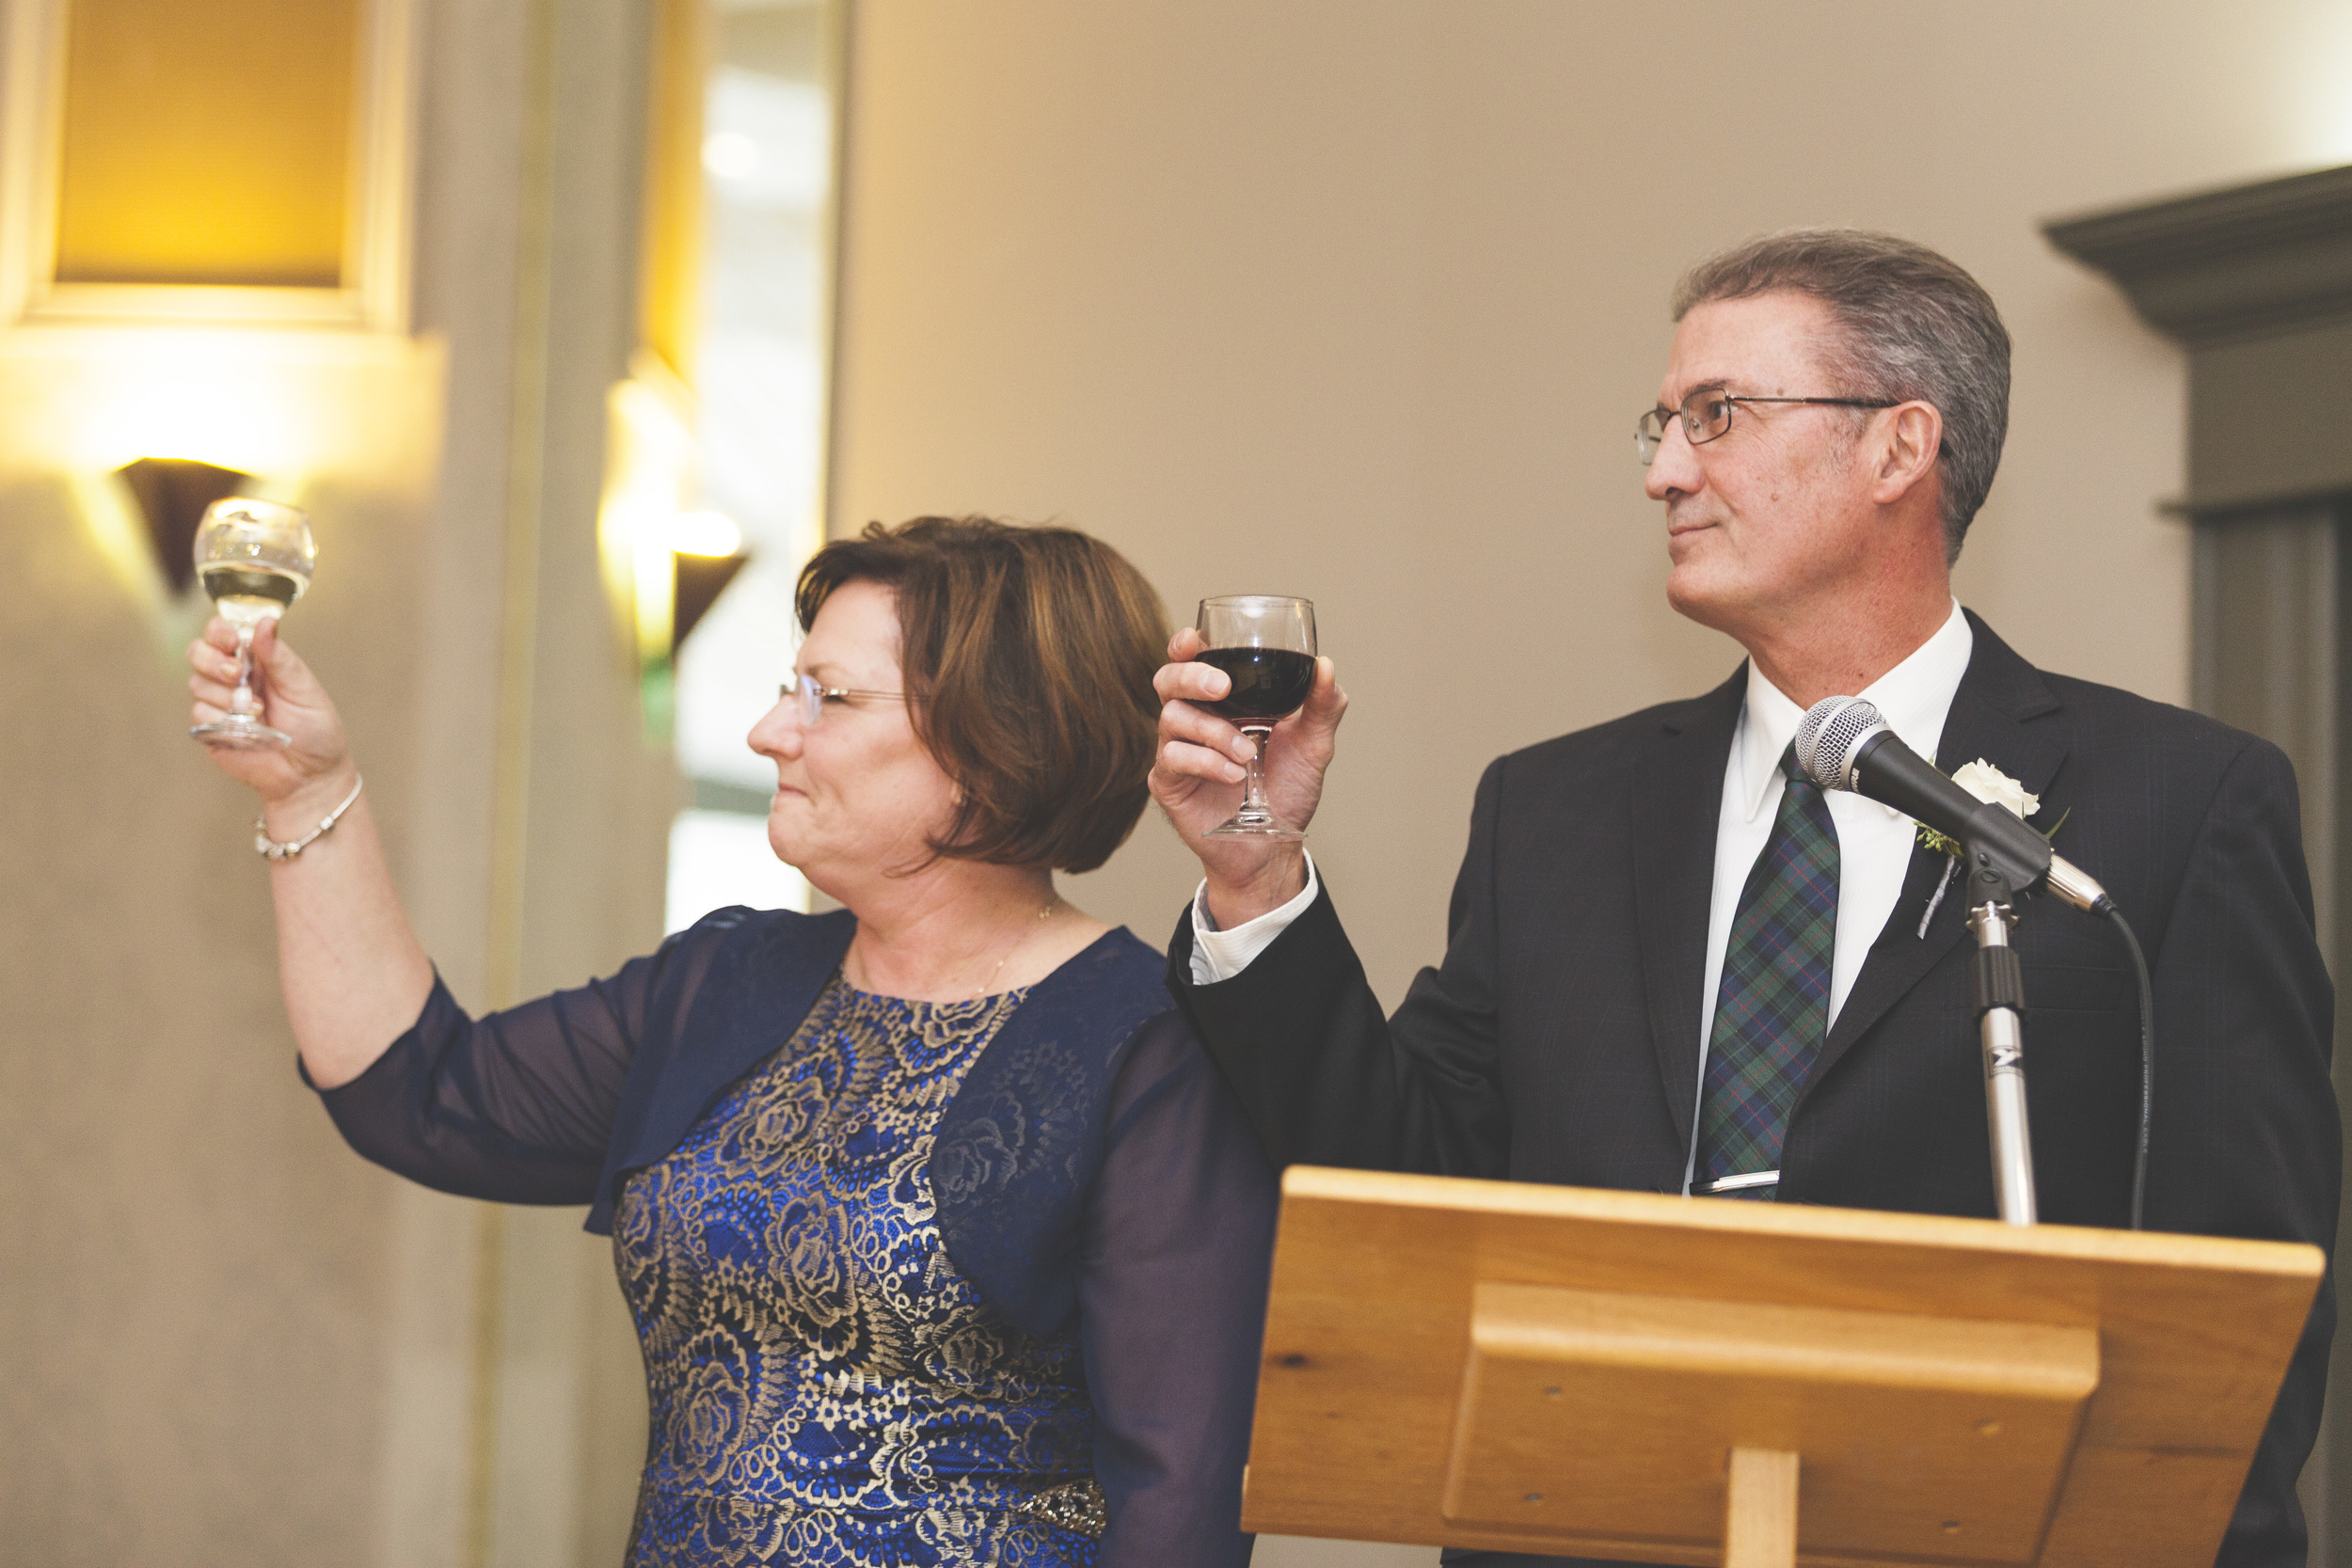 The proud parents raise a glass.